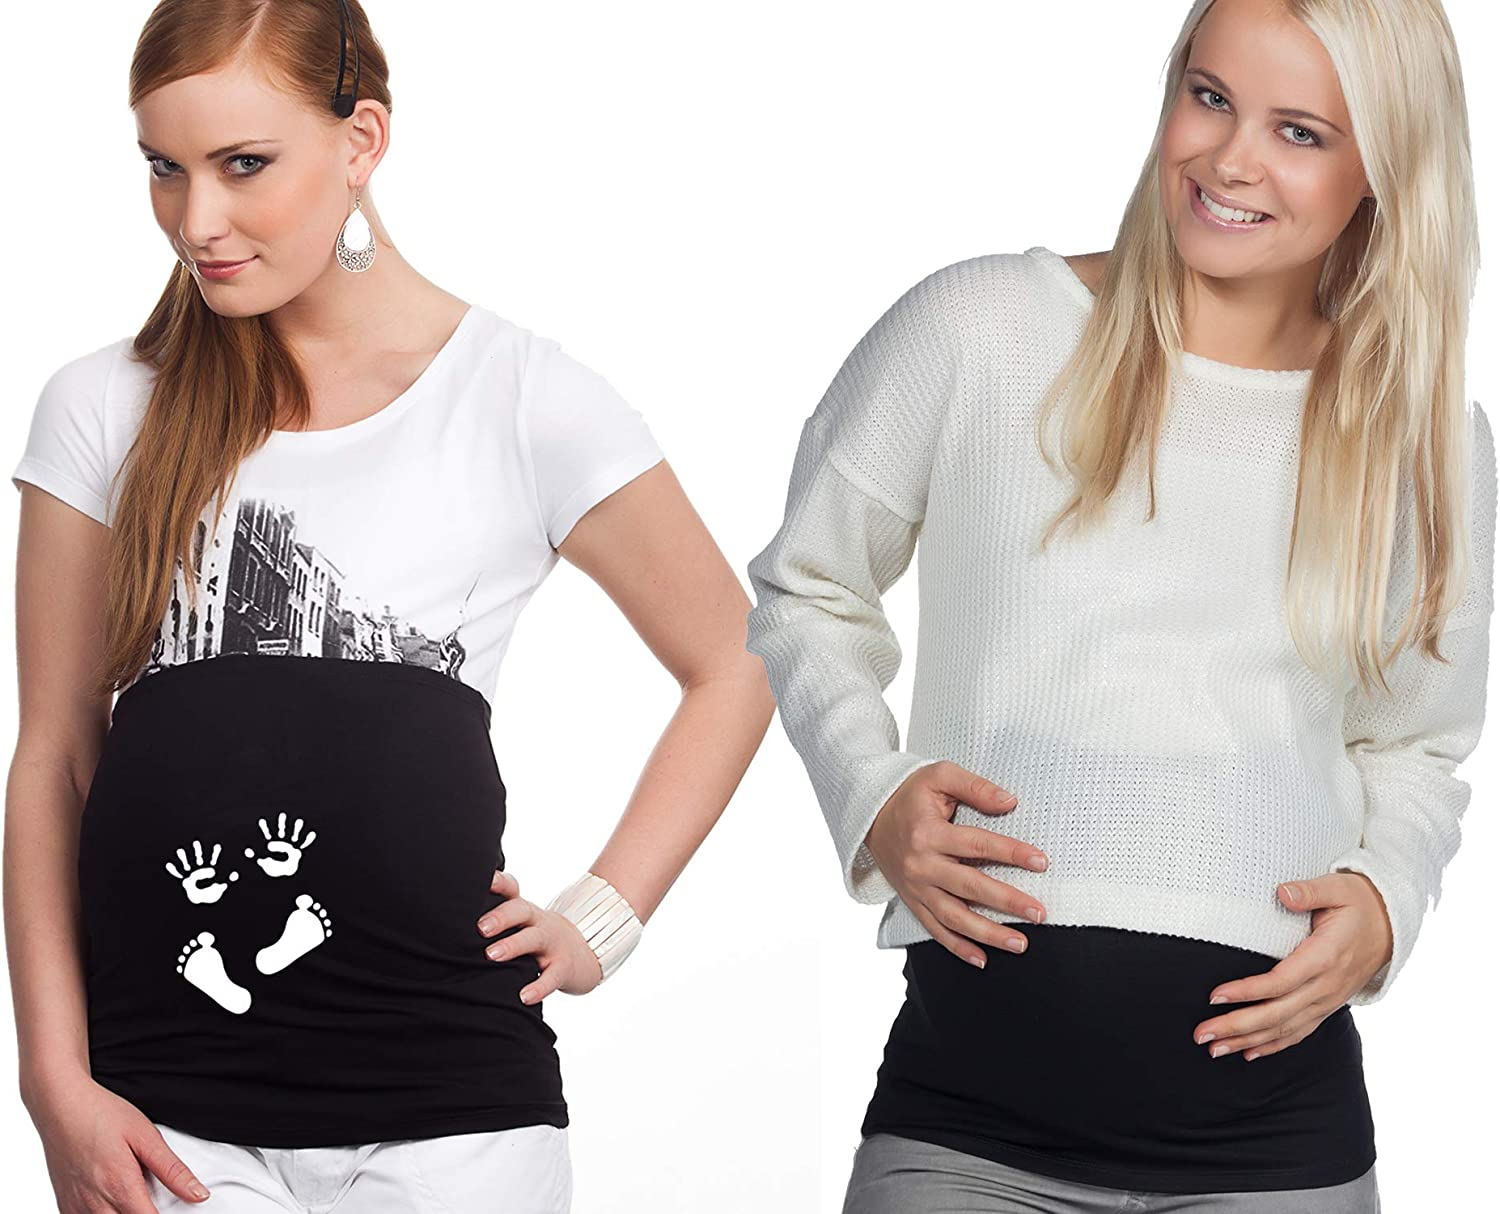 1 x printed Large -  Black Mamaband Pregnancy Belly Band for your baby belly 1 x Plain-coloured Back Warmer and Shirt Extension for Pregnant Women Double Pack Elastic Maternity Fashion